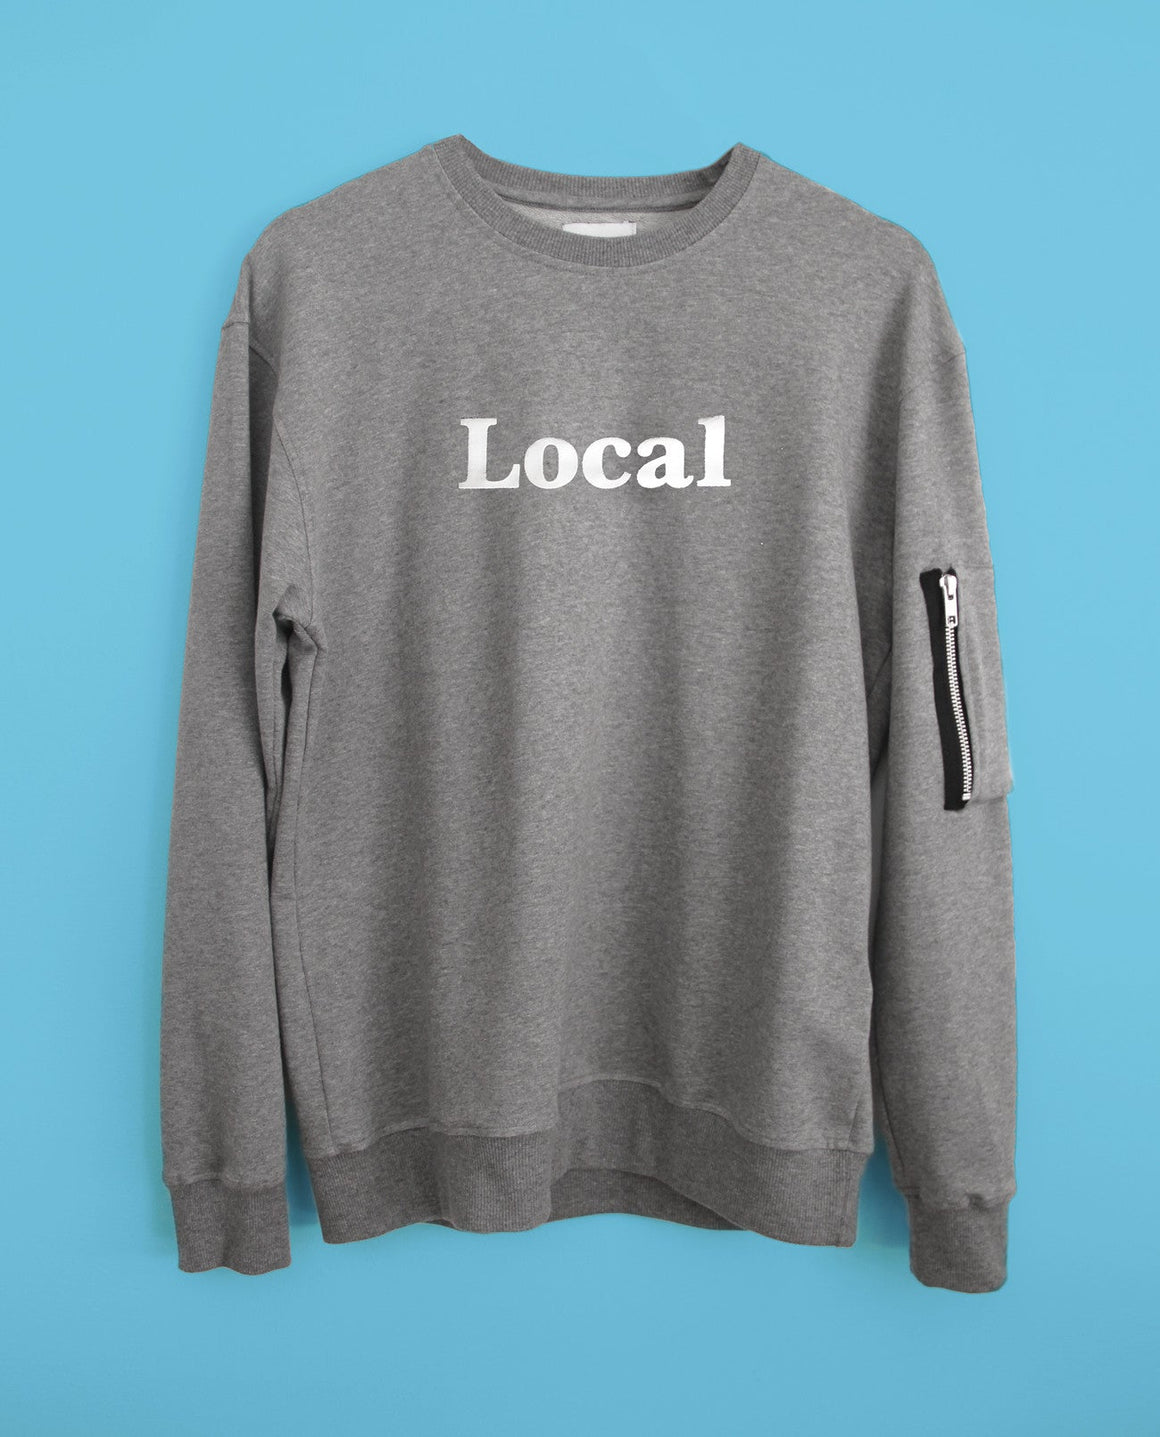 Local Sweatshirt with zipper pocket